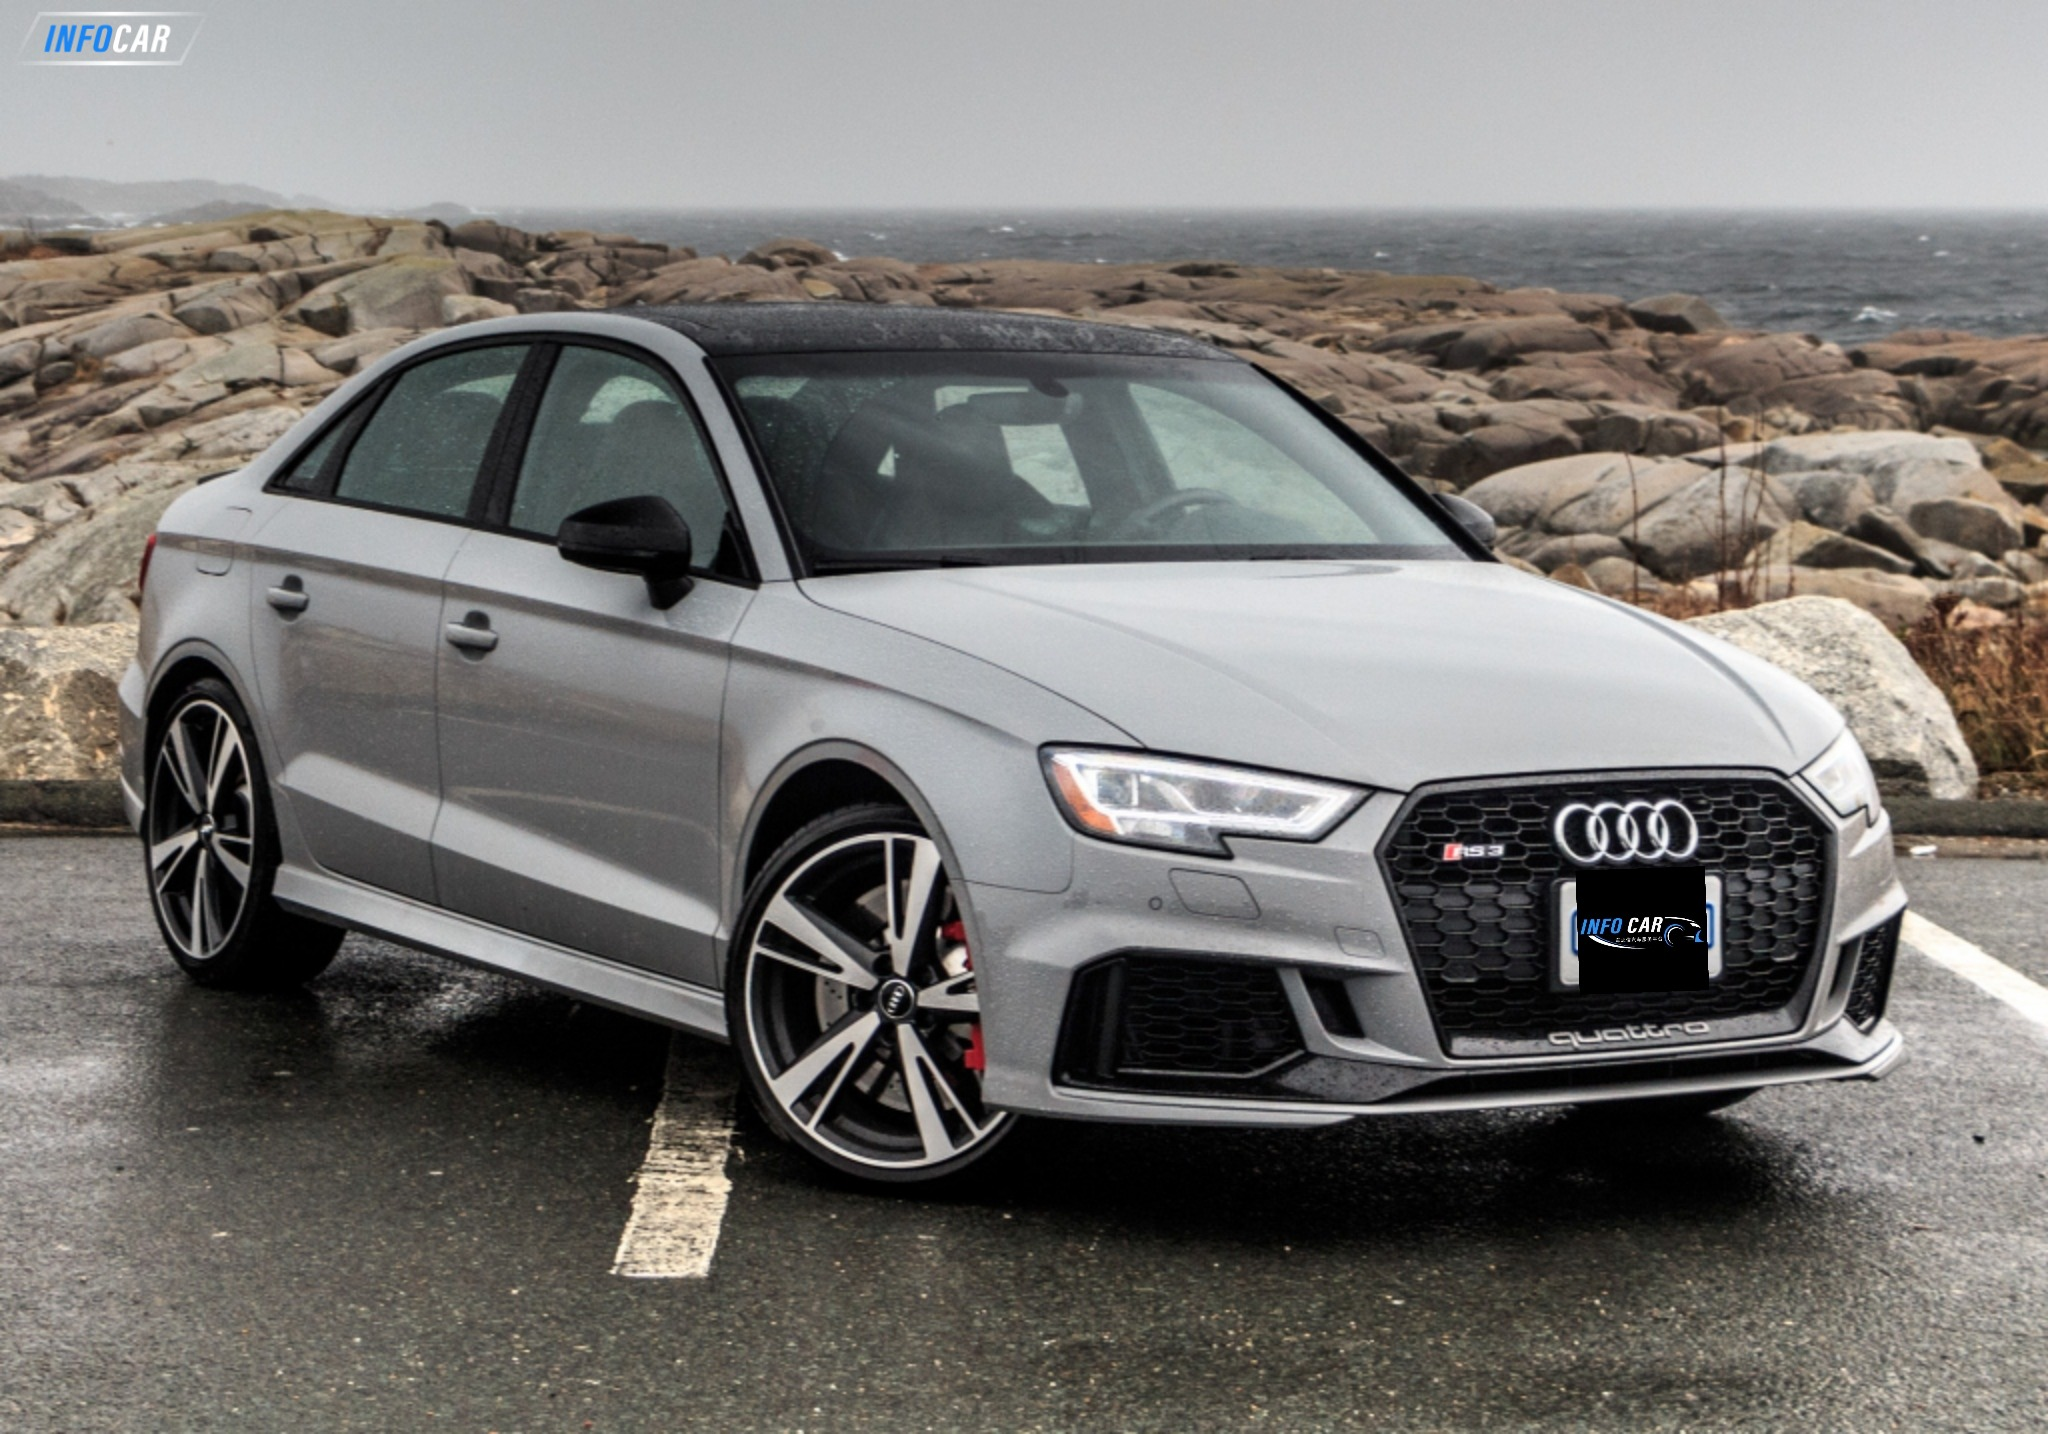 2019 Audi RS 3   - INFOCAR - Toronto's Most Comprehensive New and Used Auto Trading Platform